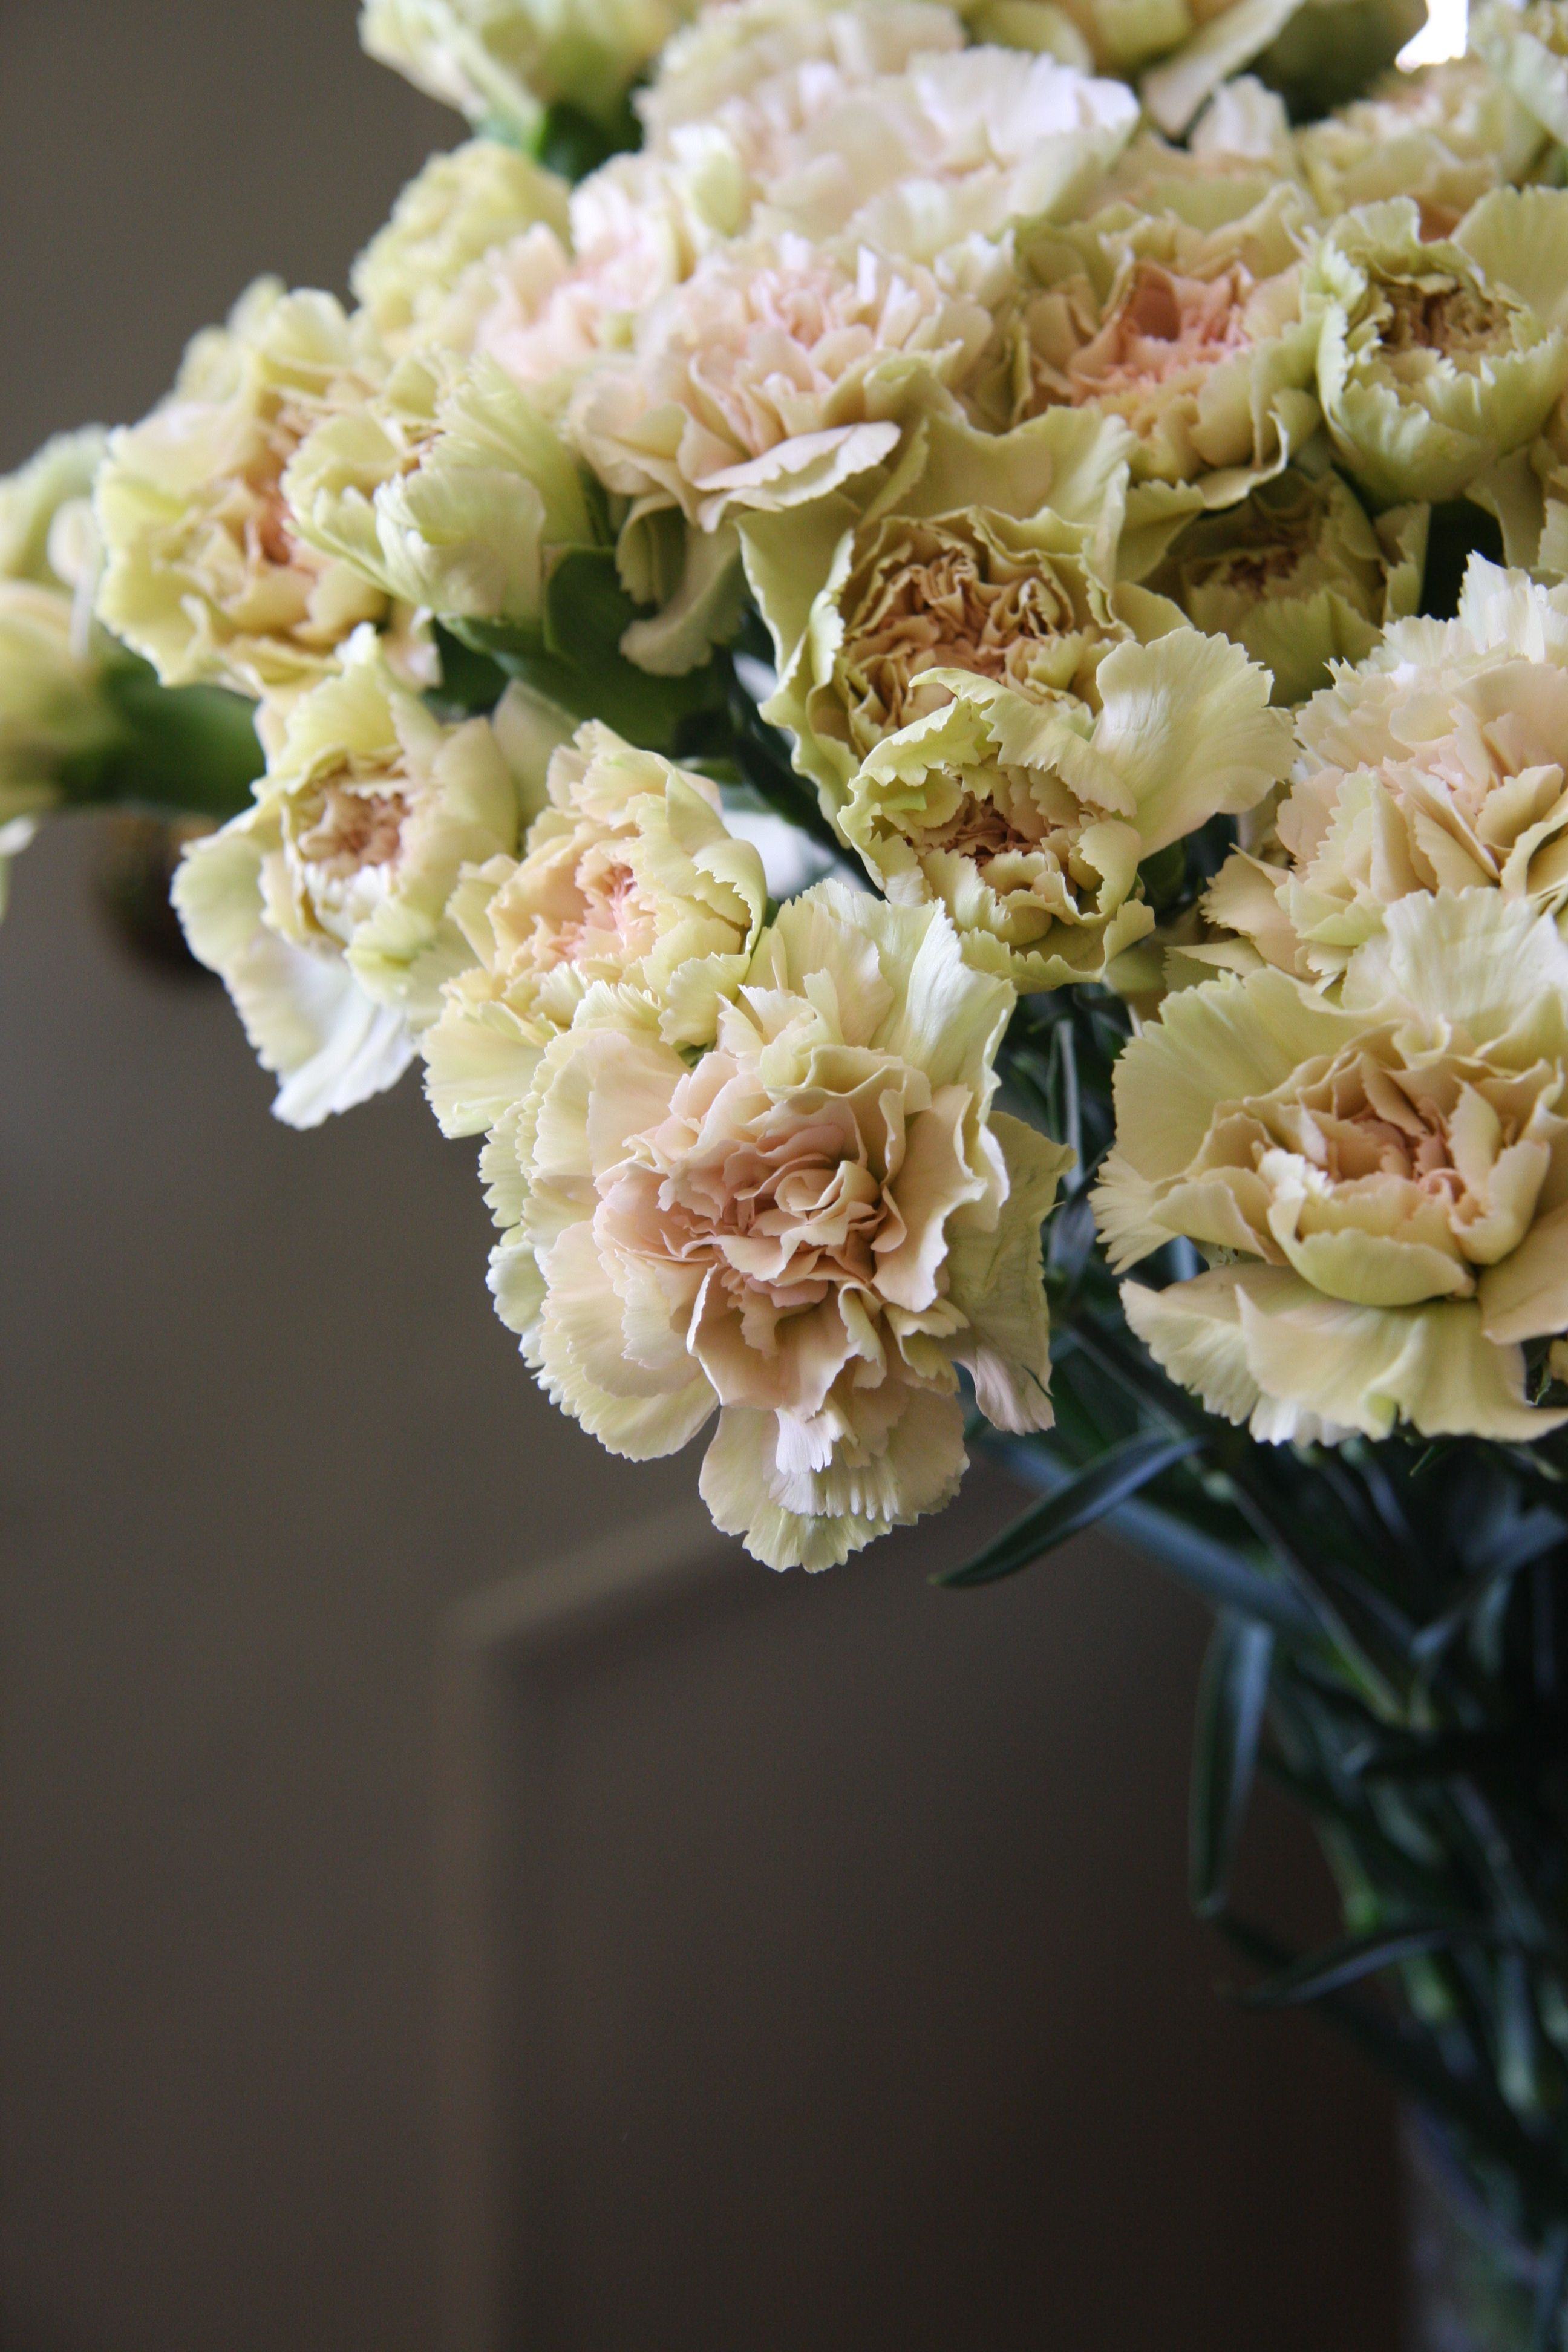 Carnation Richmond Flowers Pinterest Carnation Flowers And Plants